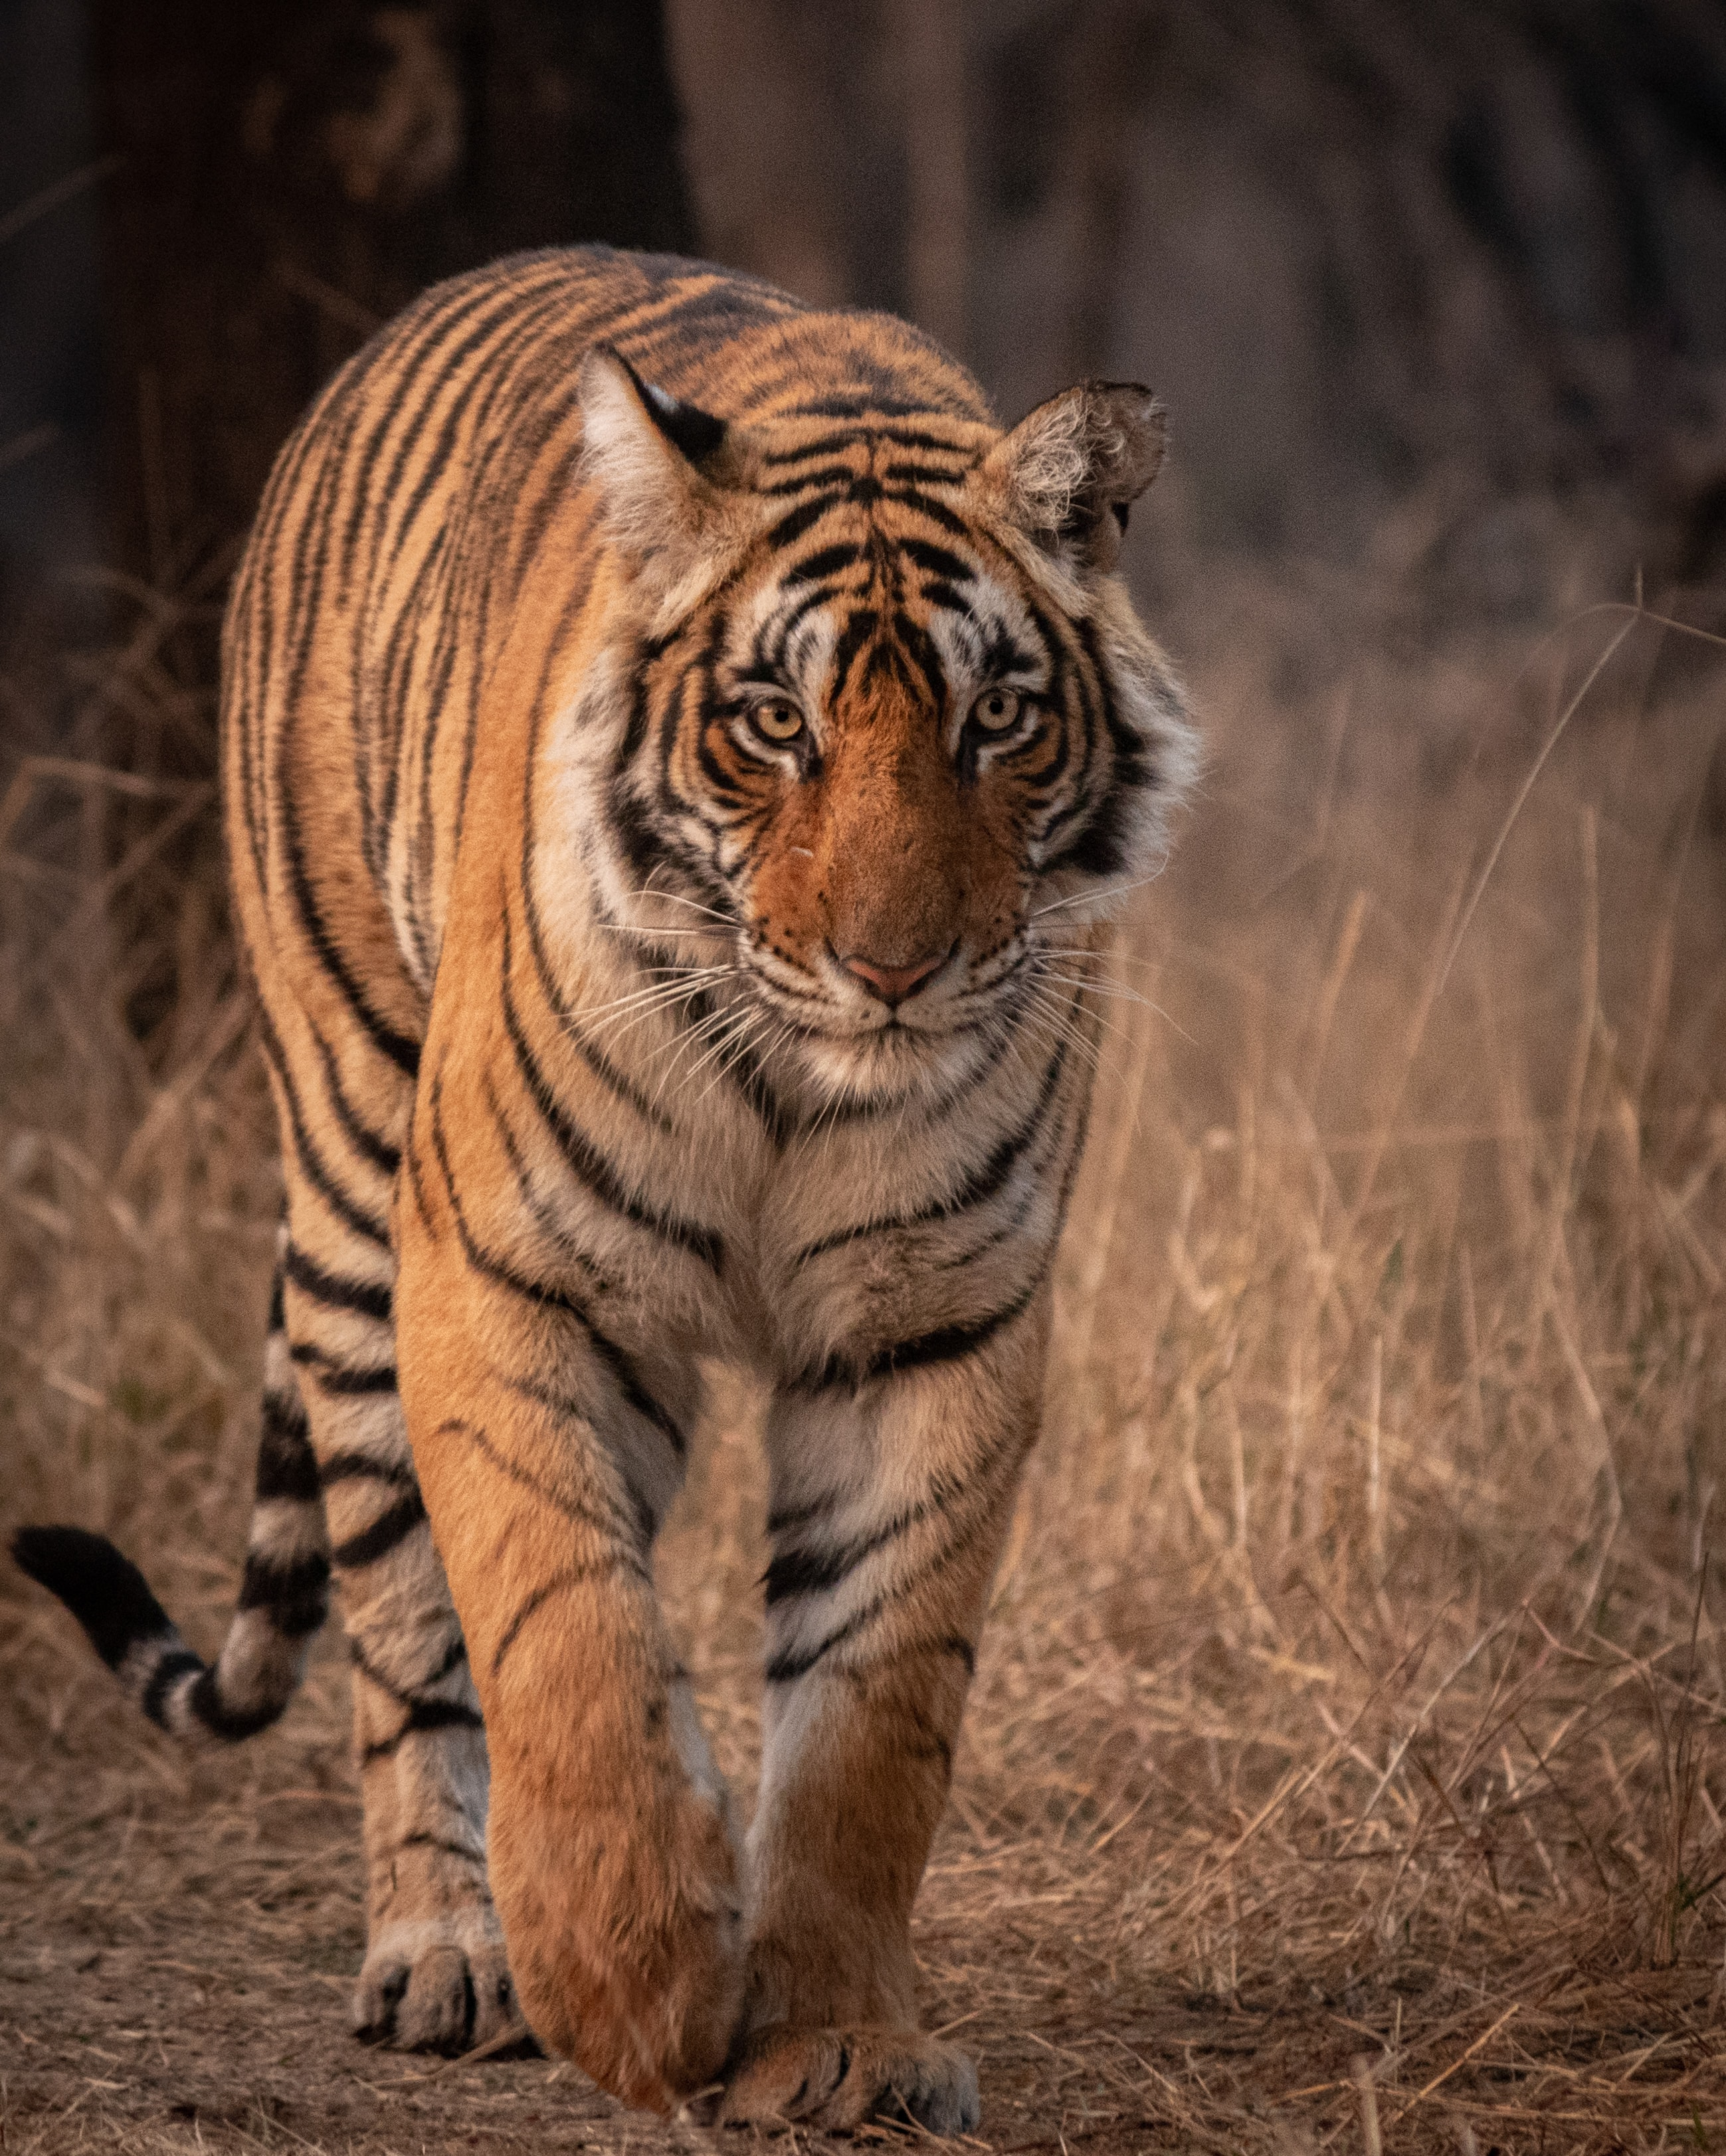 83720 download wallpaper Animals, Tiger, Predator, Animal, Sight, Opinion, Big Cat, Wildlife screensavers and pictures for free